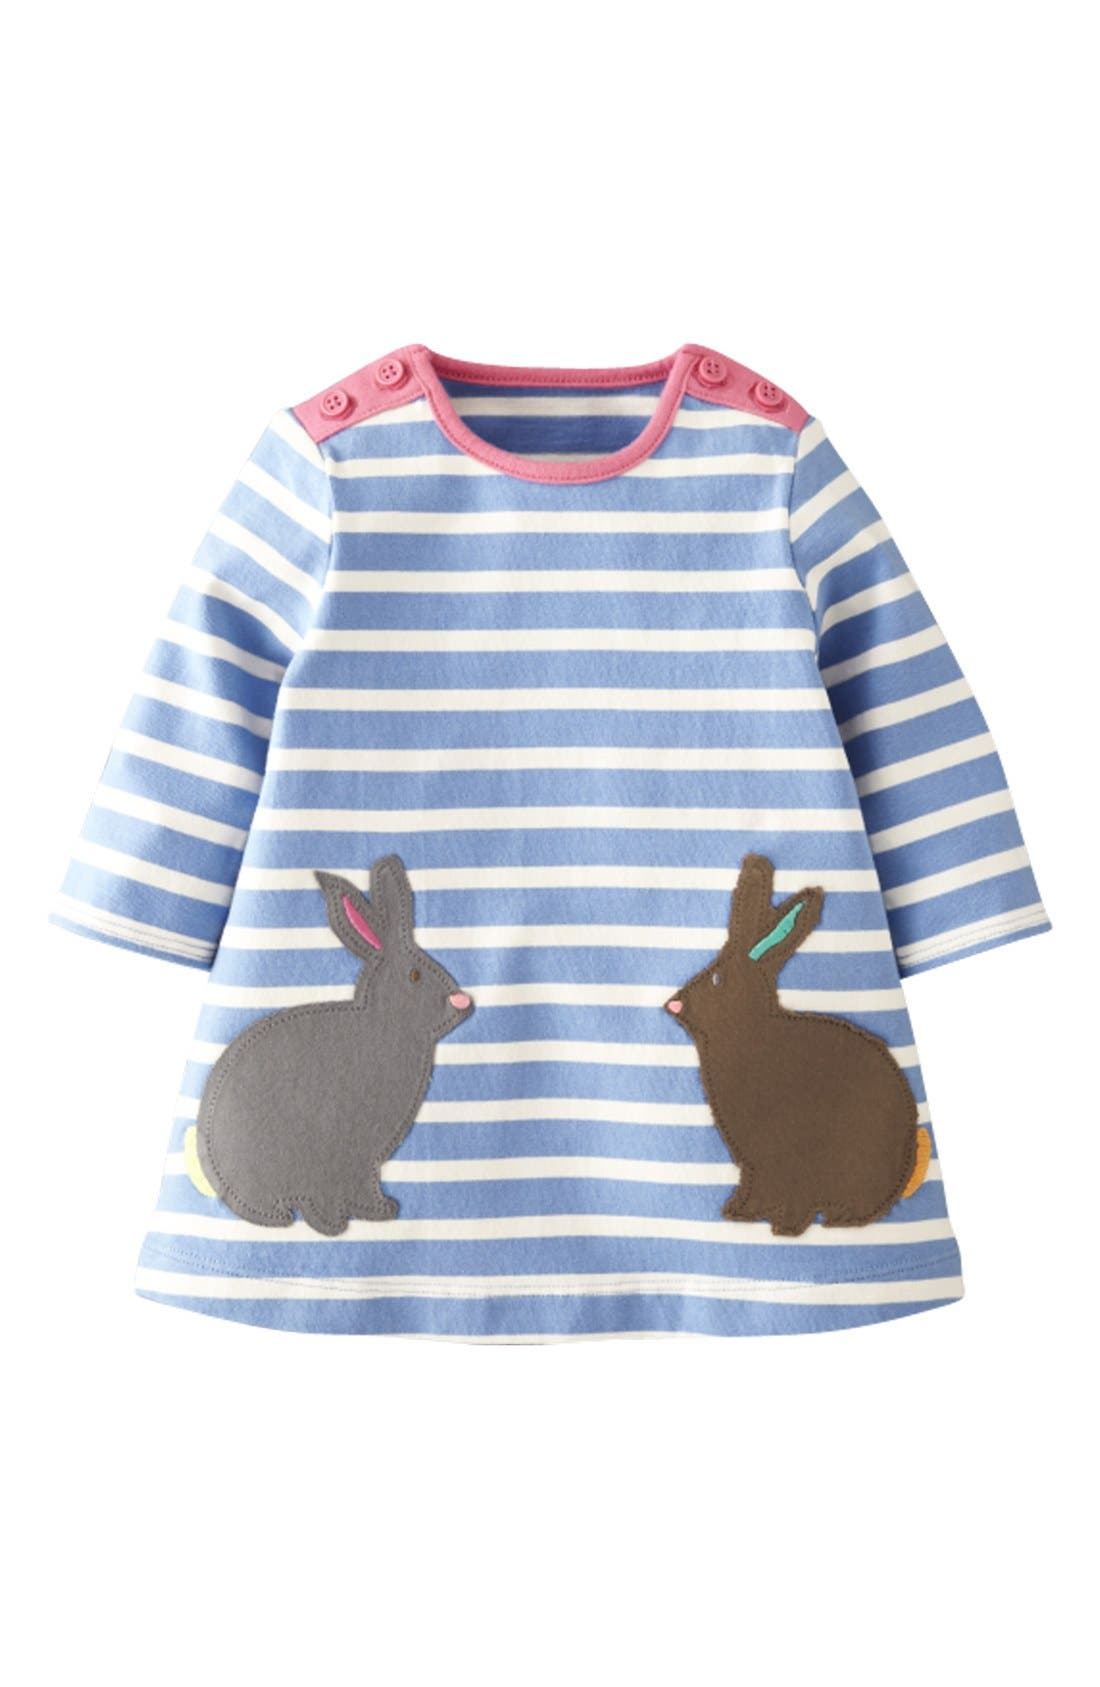 Alternate Image 1 Selected - Mini Boden Stripe Jersey Dress (Baby Girls)